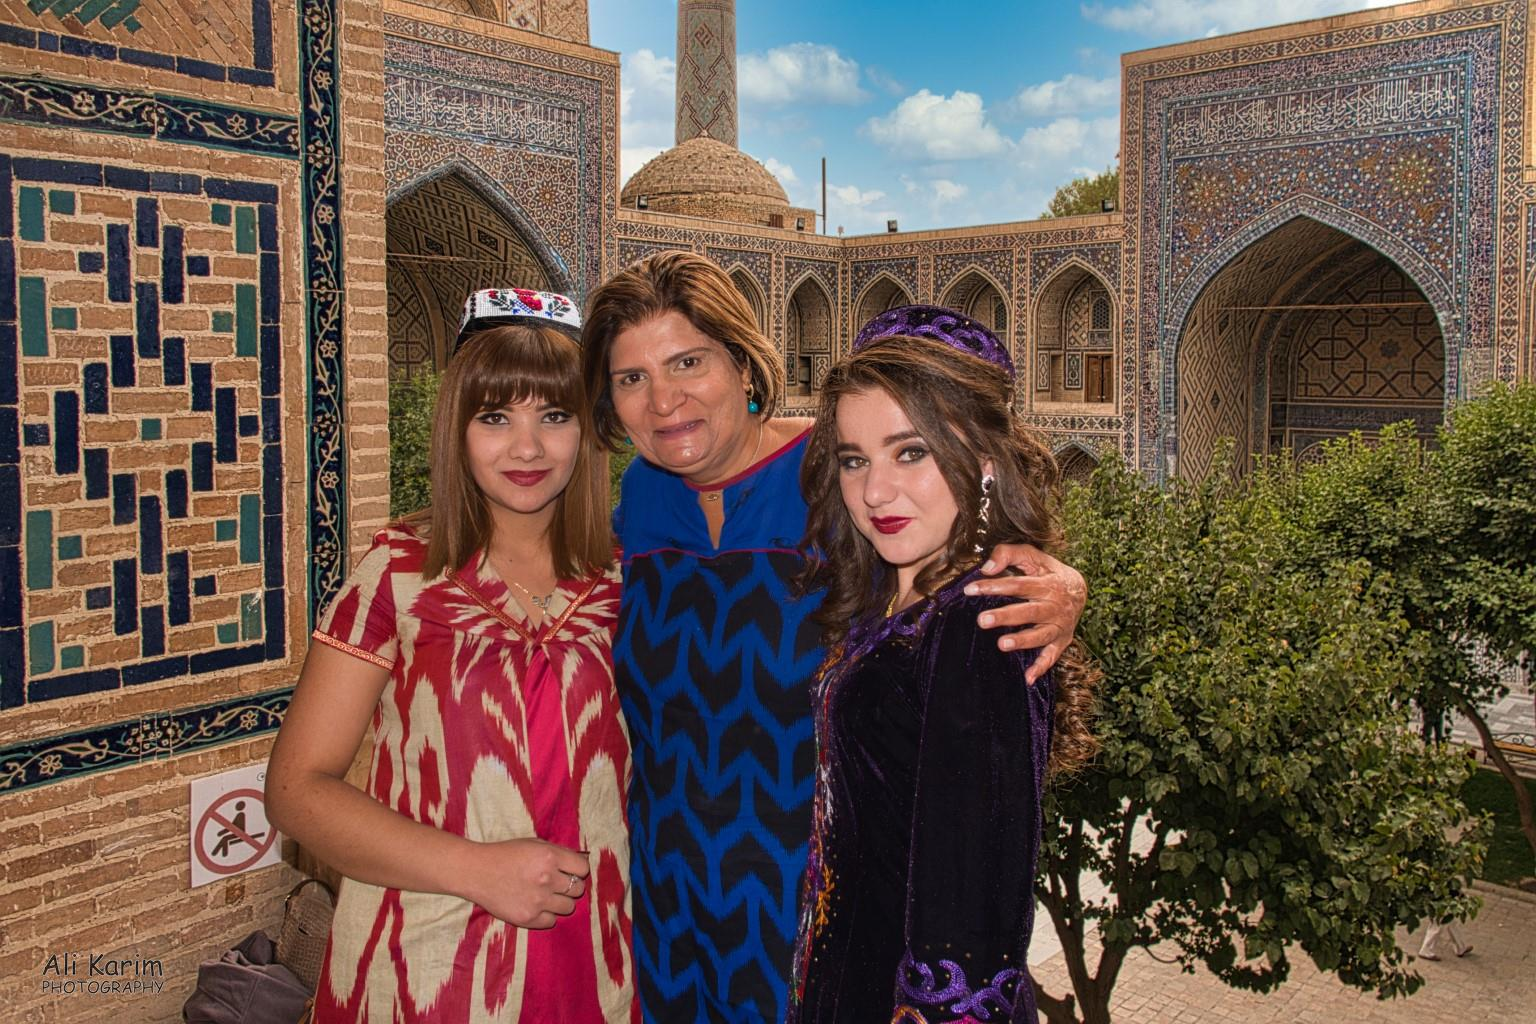 More Samarkand, Friendly local tourists who had come to the Registan to take pre-wedding photos for the lady on the left